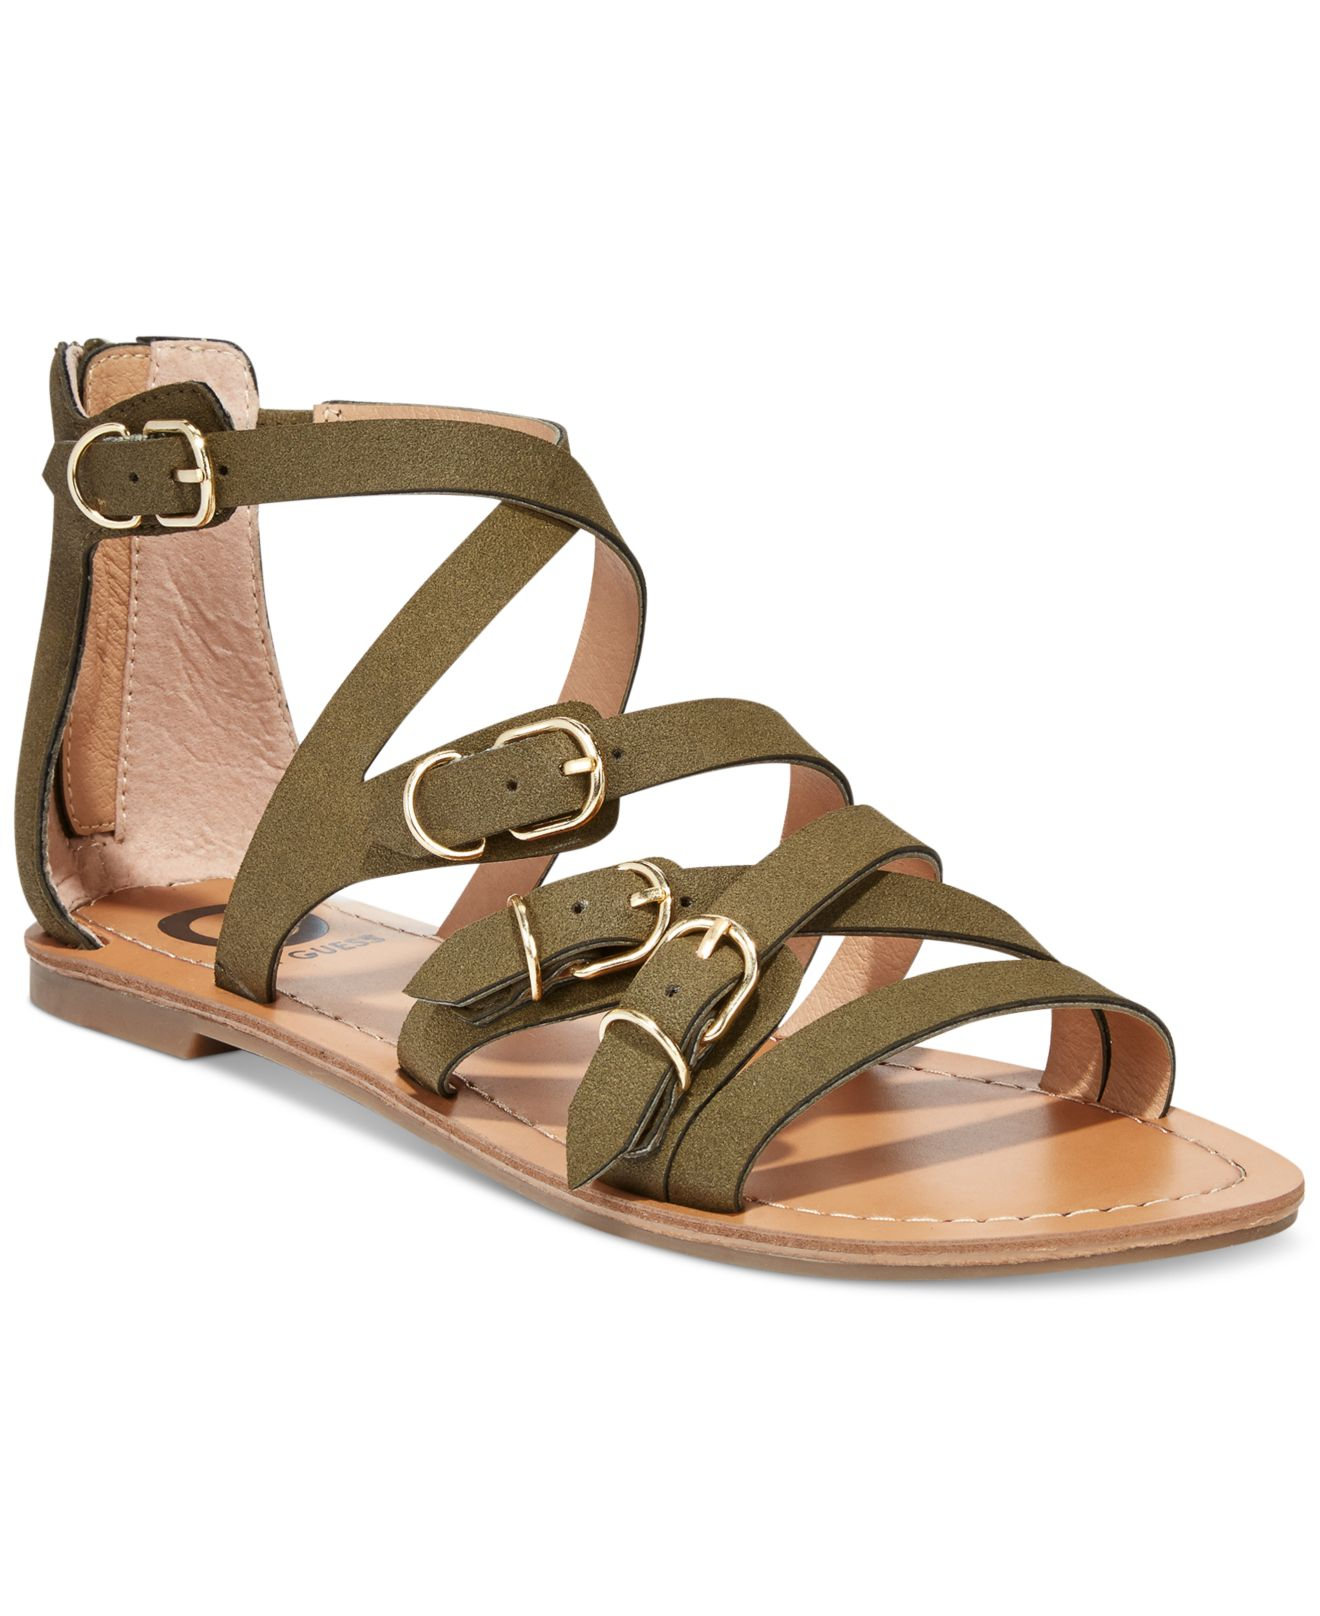 dafd50118a71 Lyst - G by Guess Women S Harris Strappy Flat Sandals in Natural